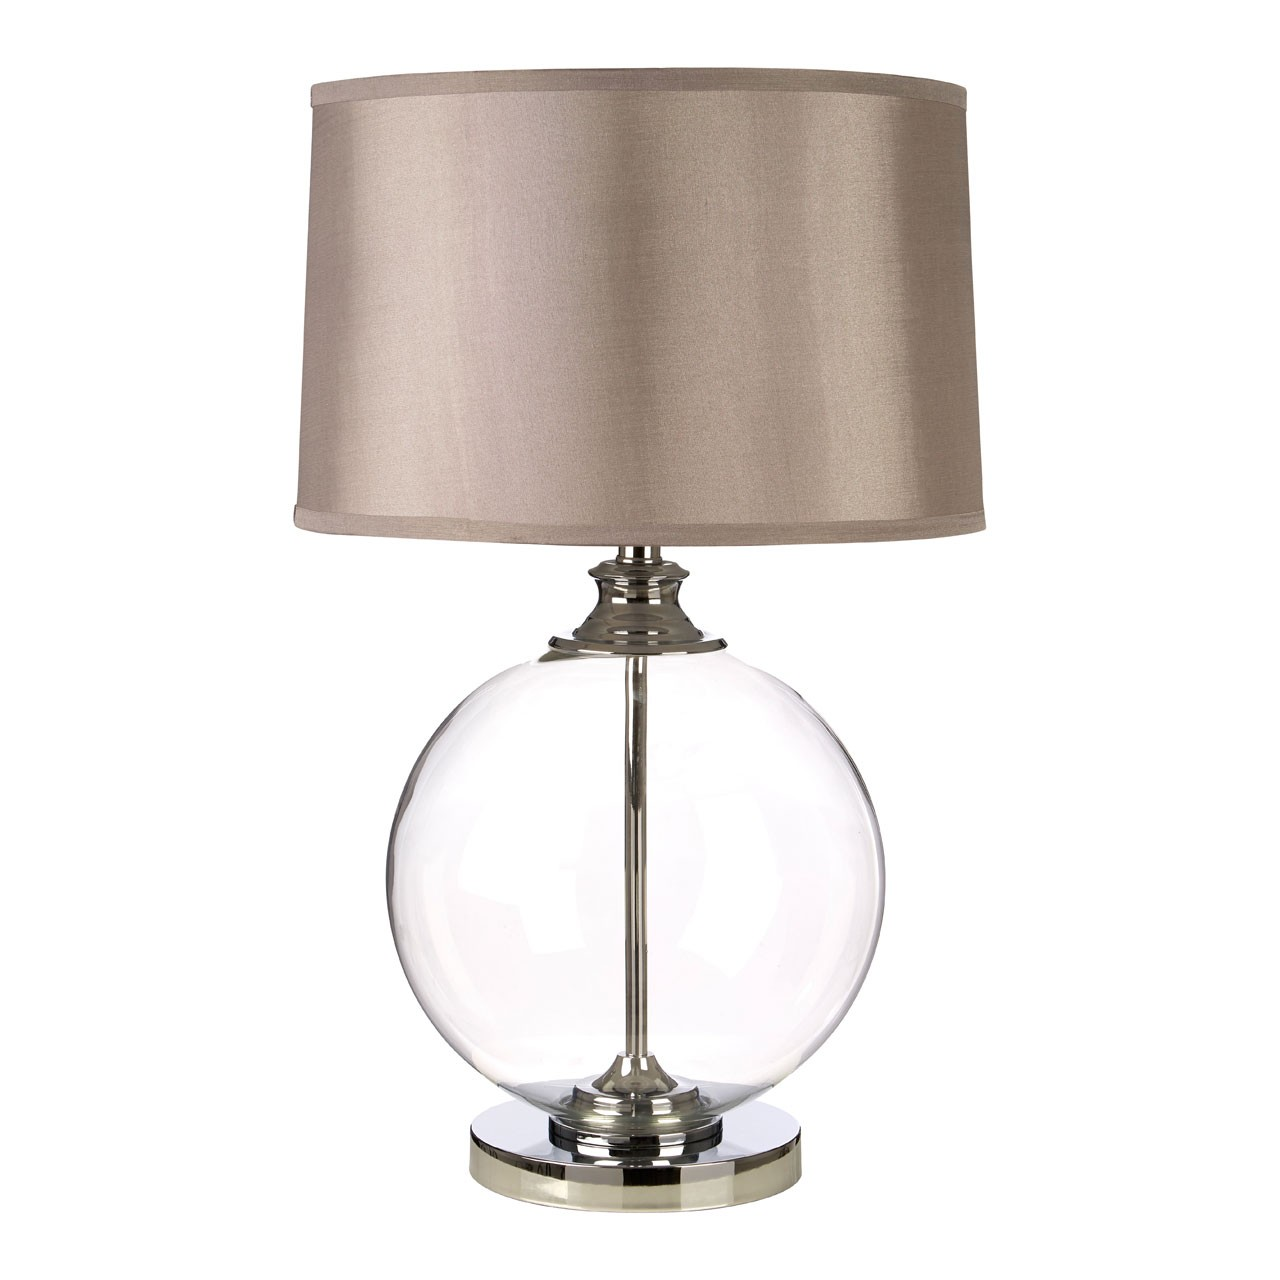 Prime Furnishing Edna Small Table Lamp - White Shade